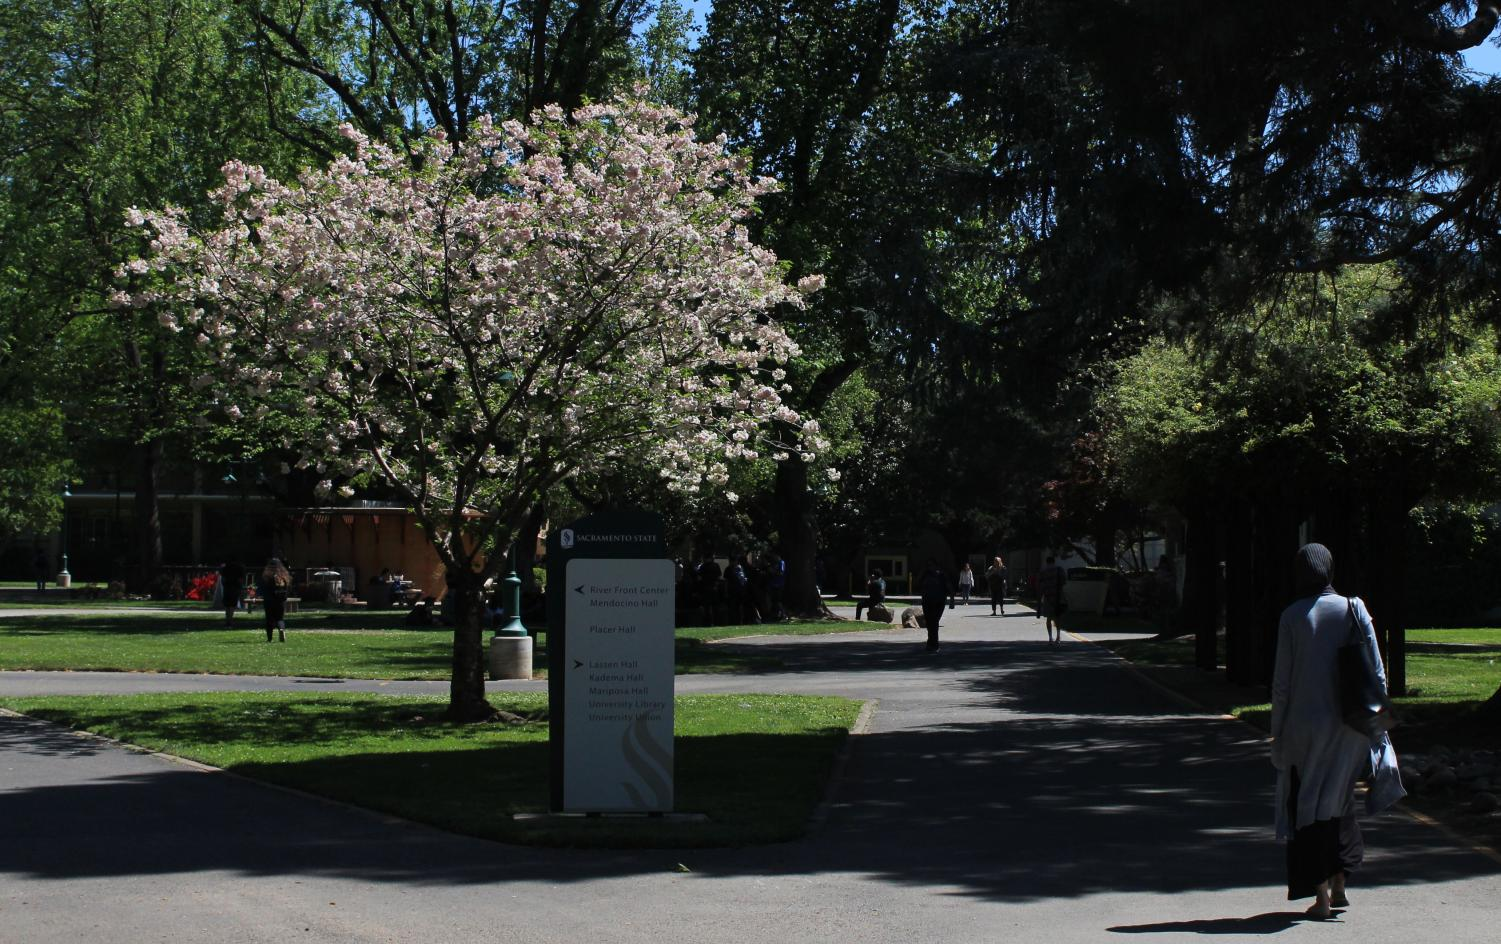 A Callery Pear on campus at Sac State. These white blooms are a notorious source of allergies all over the city of Sacramento.